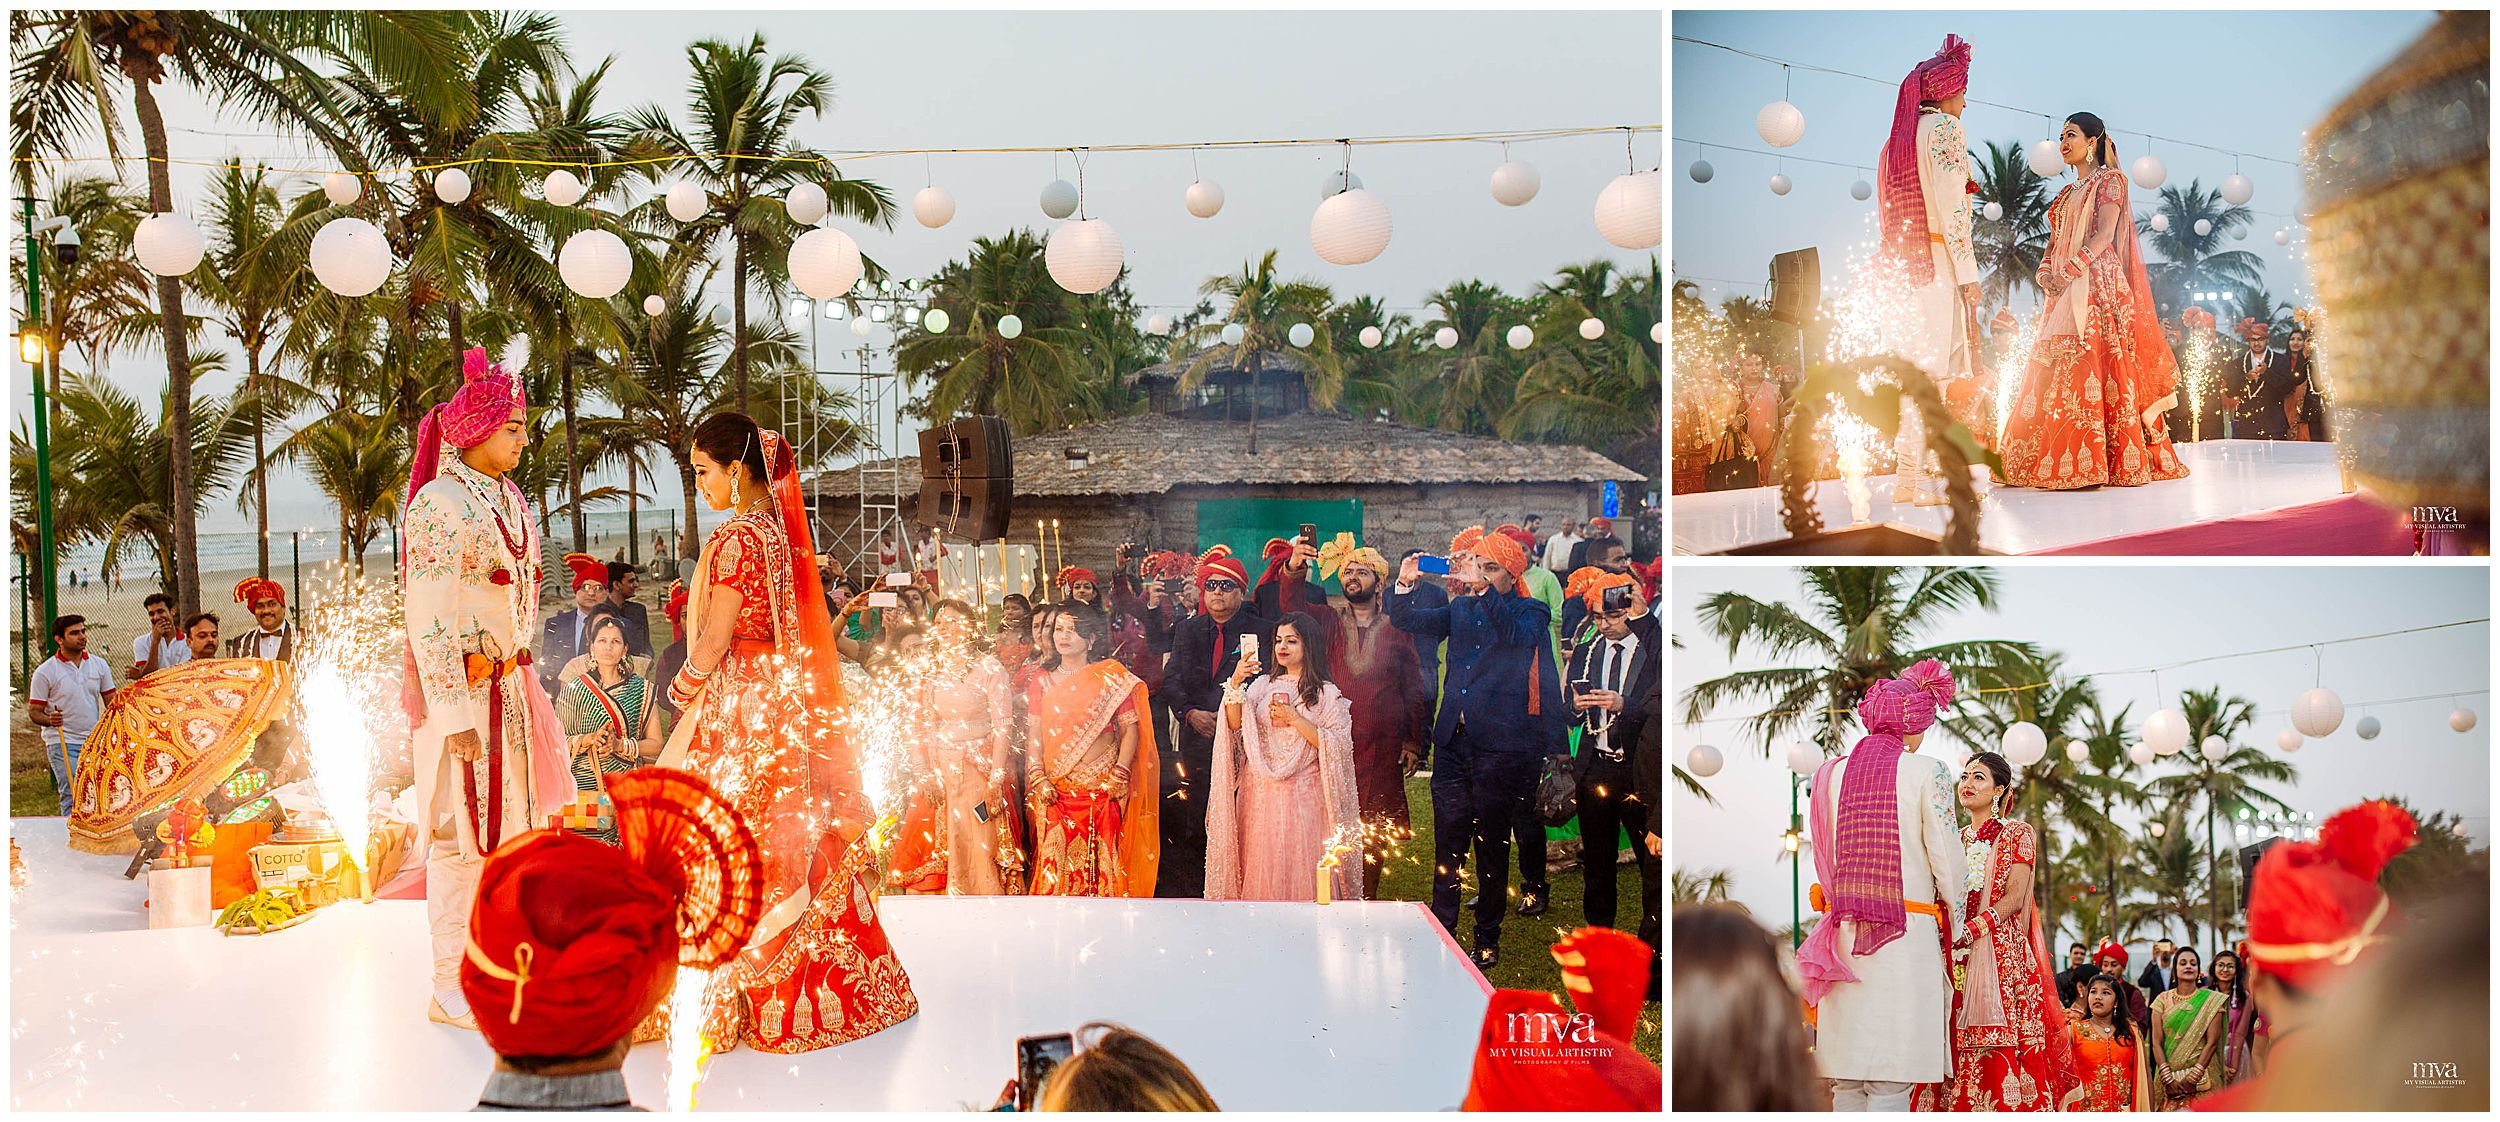 ROHIT_SANIYA_MYVISUALARTISTRY__WEDDING_PHOTOGRAPHER_GOA_DESTINATION_CAREVELA_RESORT_0021.jpg